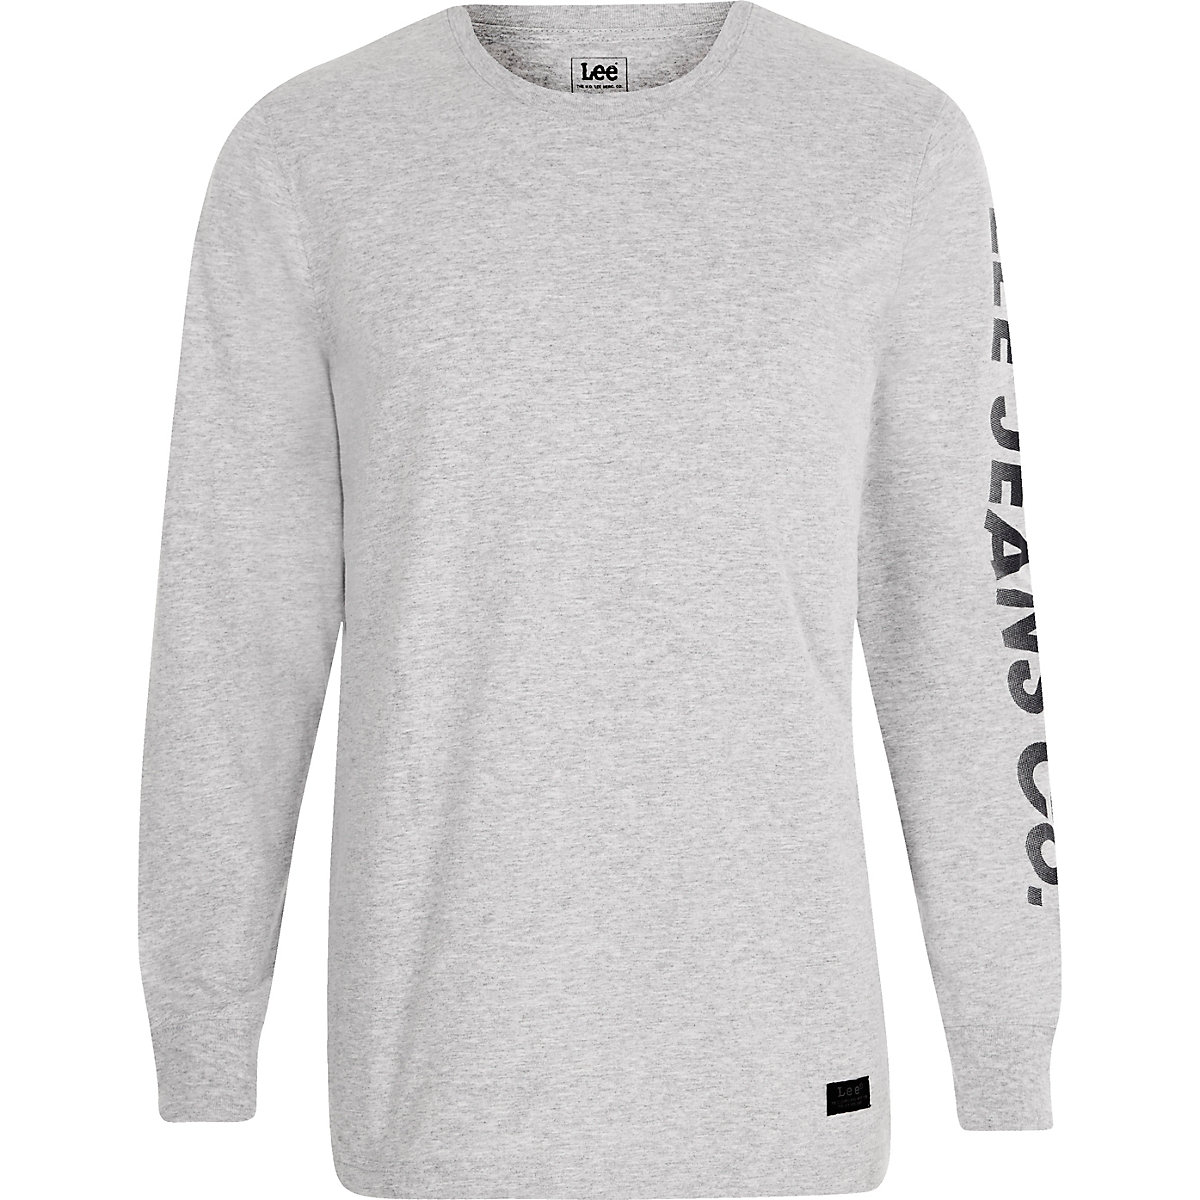 Lee grey logo print long sleeve T-shirt